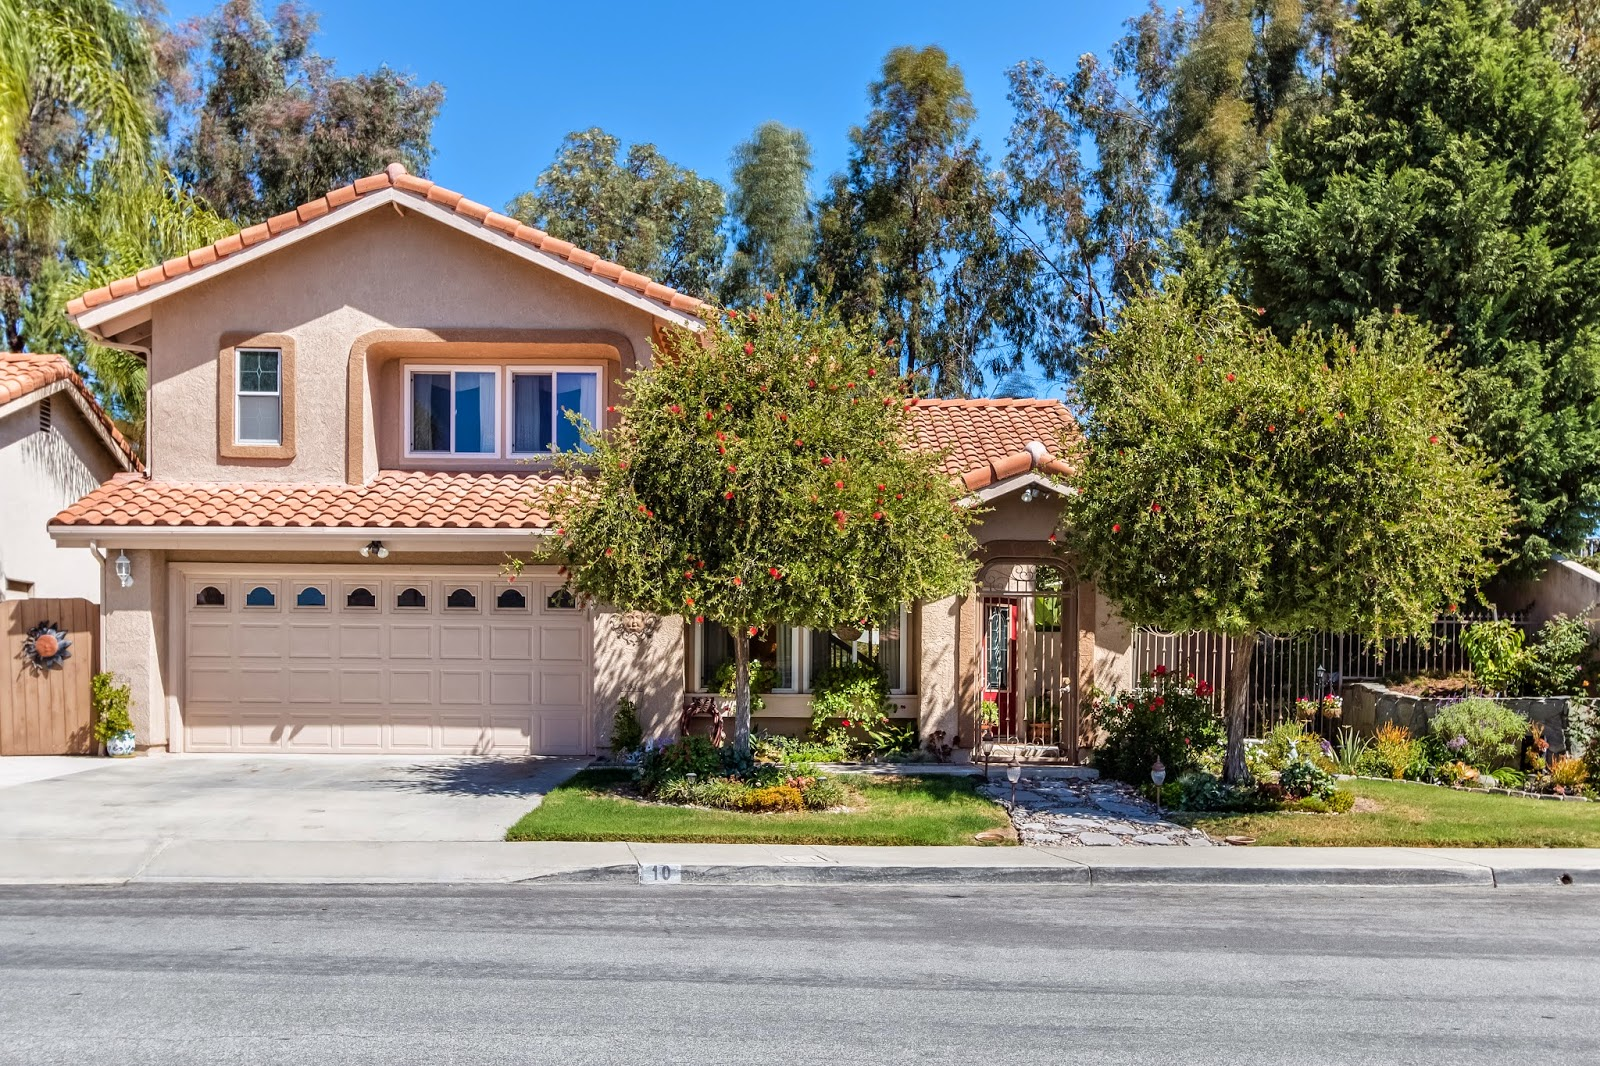 rancho santa margarita singles Zillow has 159 homes for sale in rancho santa margarita ca view listing photos, review sales history, and use our detailed real estate filters to find the perfect place.